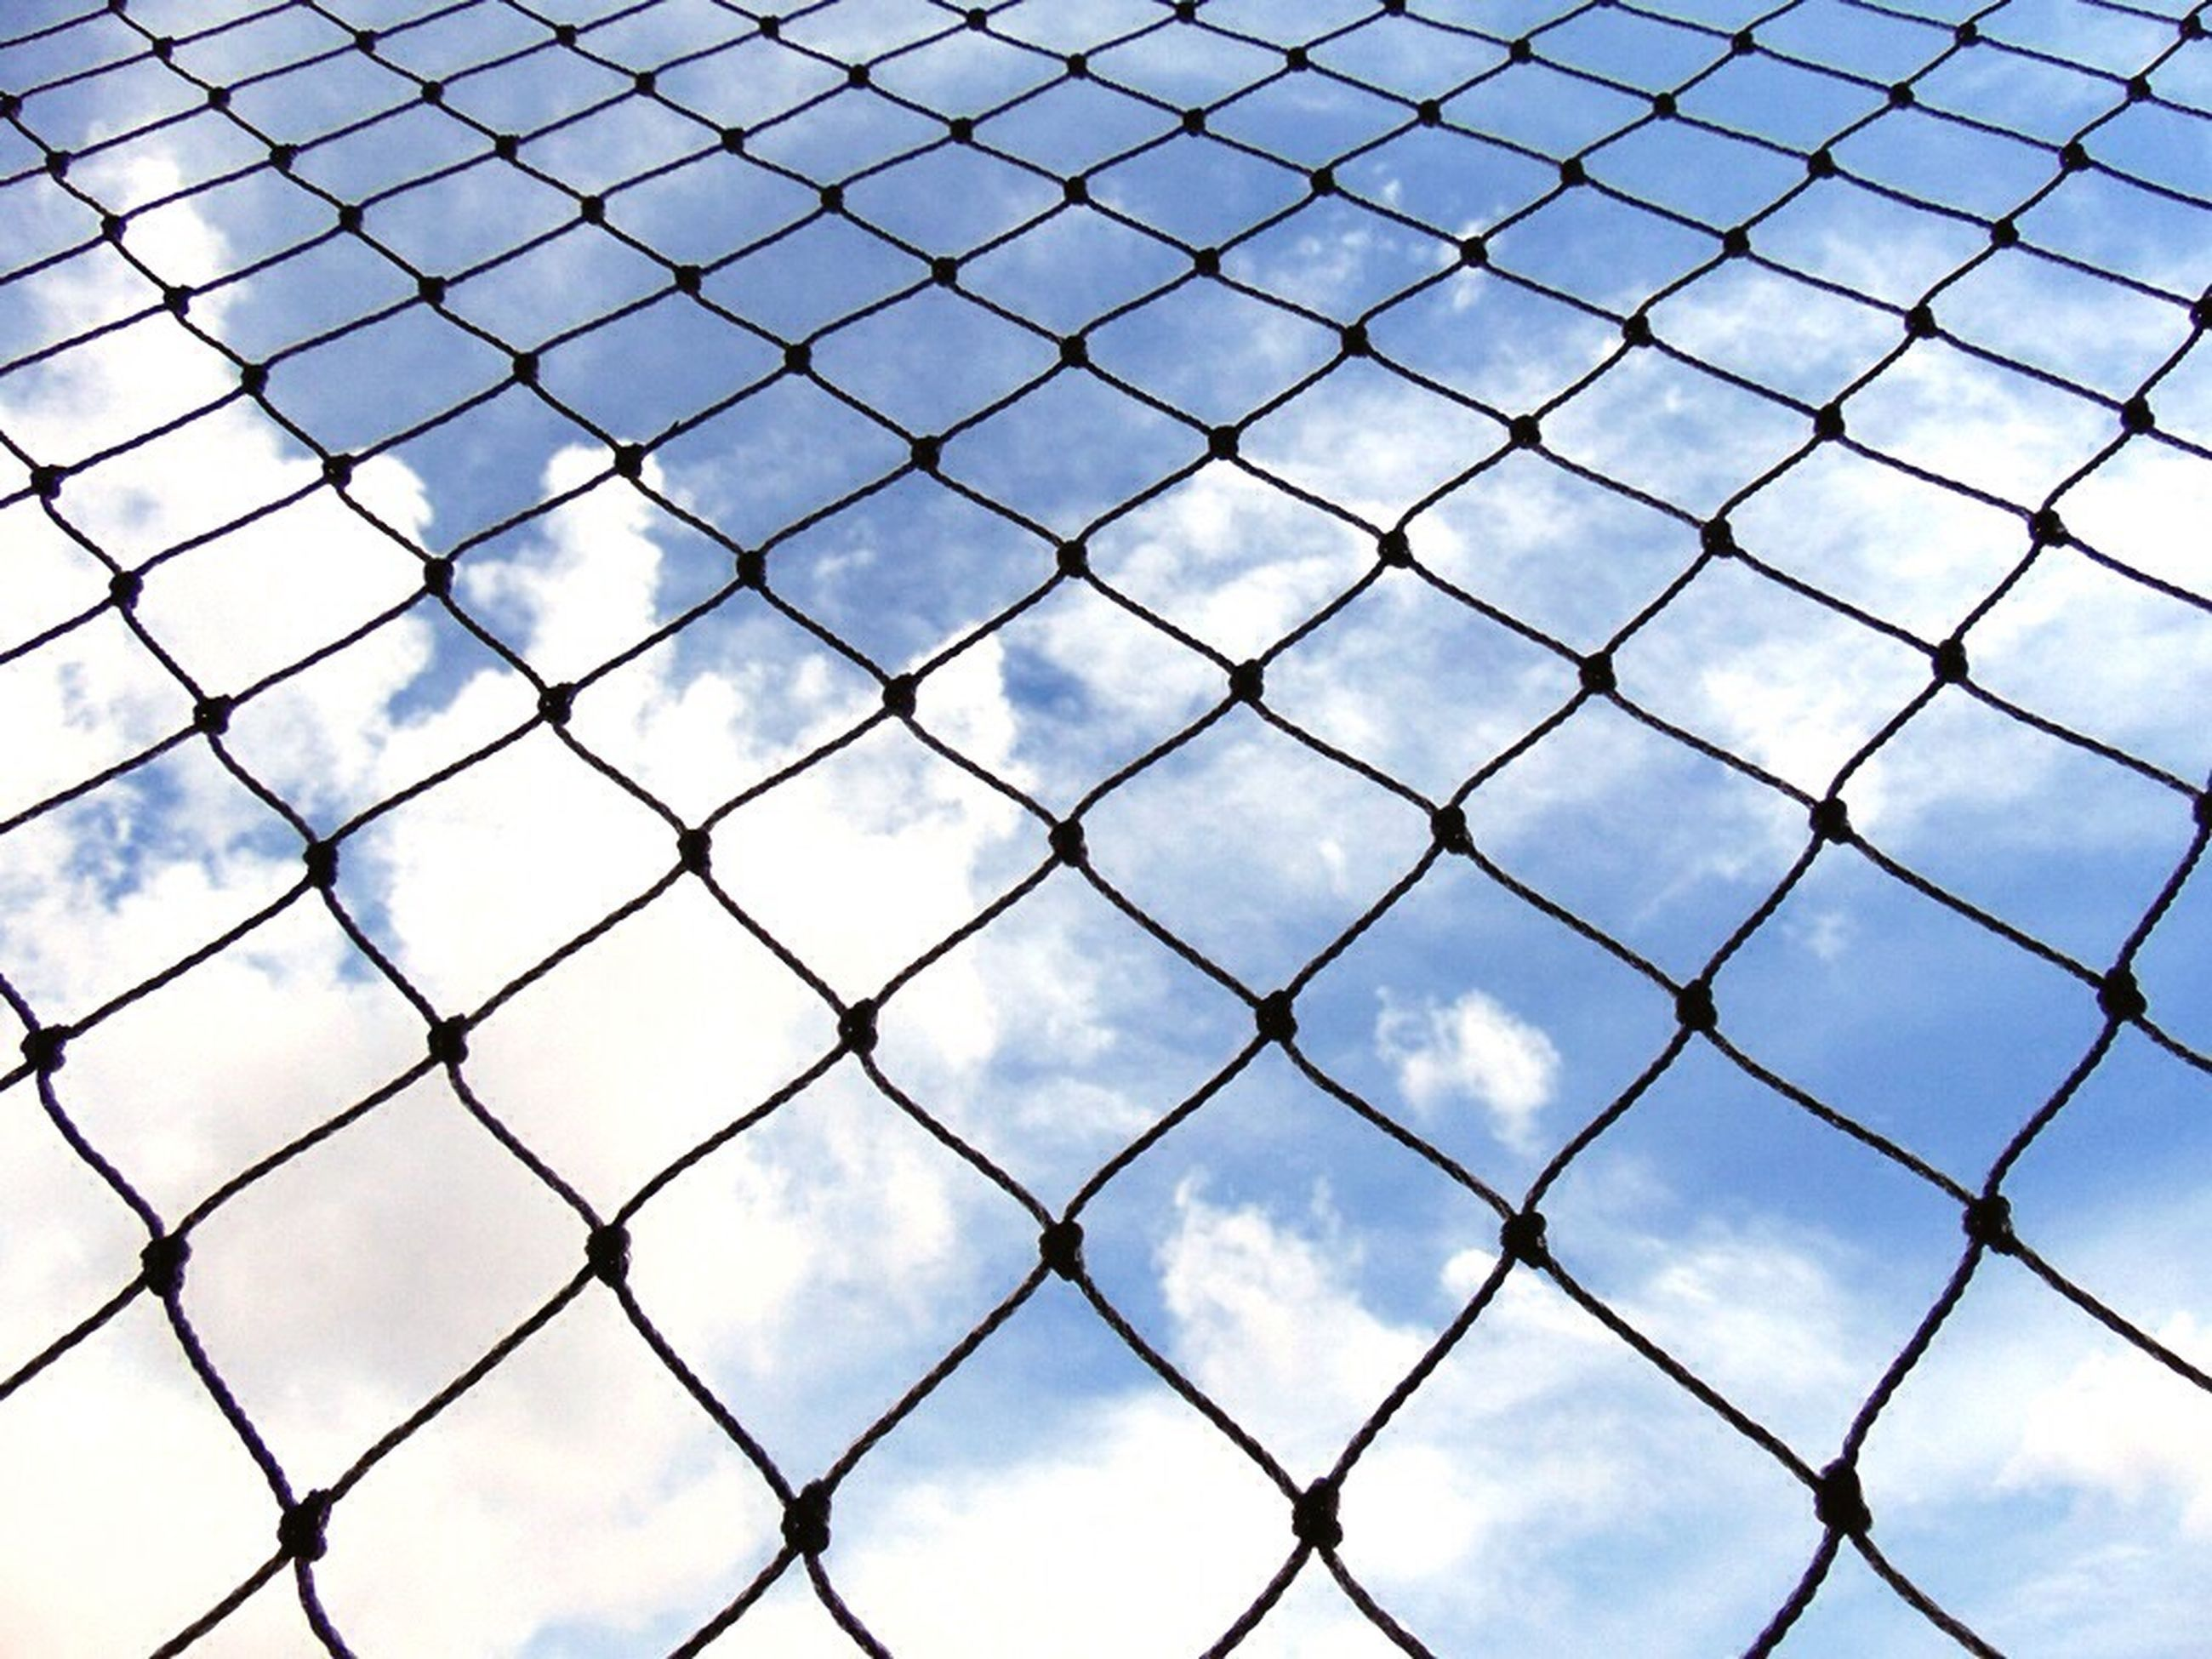 full frame, chainlink fence, cloud - sky, sky, backgrounds, fence, safety, protection, pattern, cloudy, security, metal, day, low angle view, cloud, blue, outdoors, no people, city, built structure